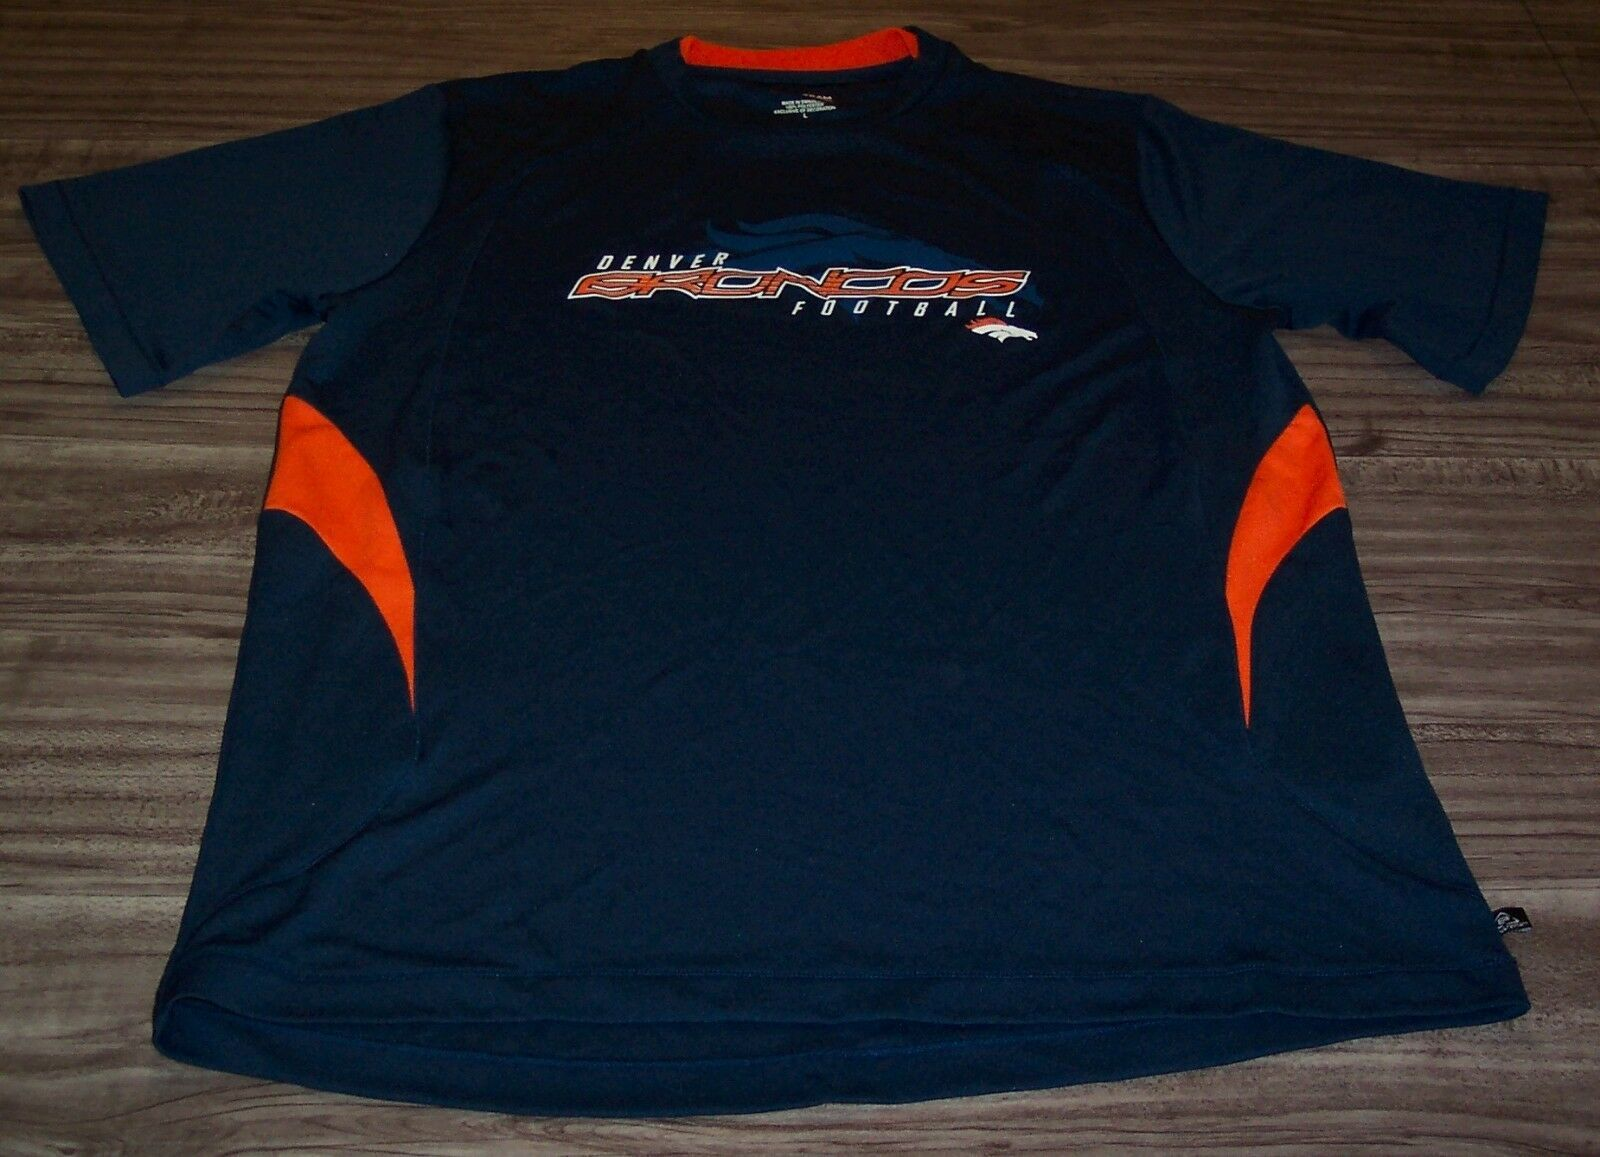 Primary image for DENVER BRONCOS NFL FOOTBALL PULLOVER JERSEY MENS LARGE  NEW